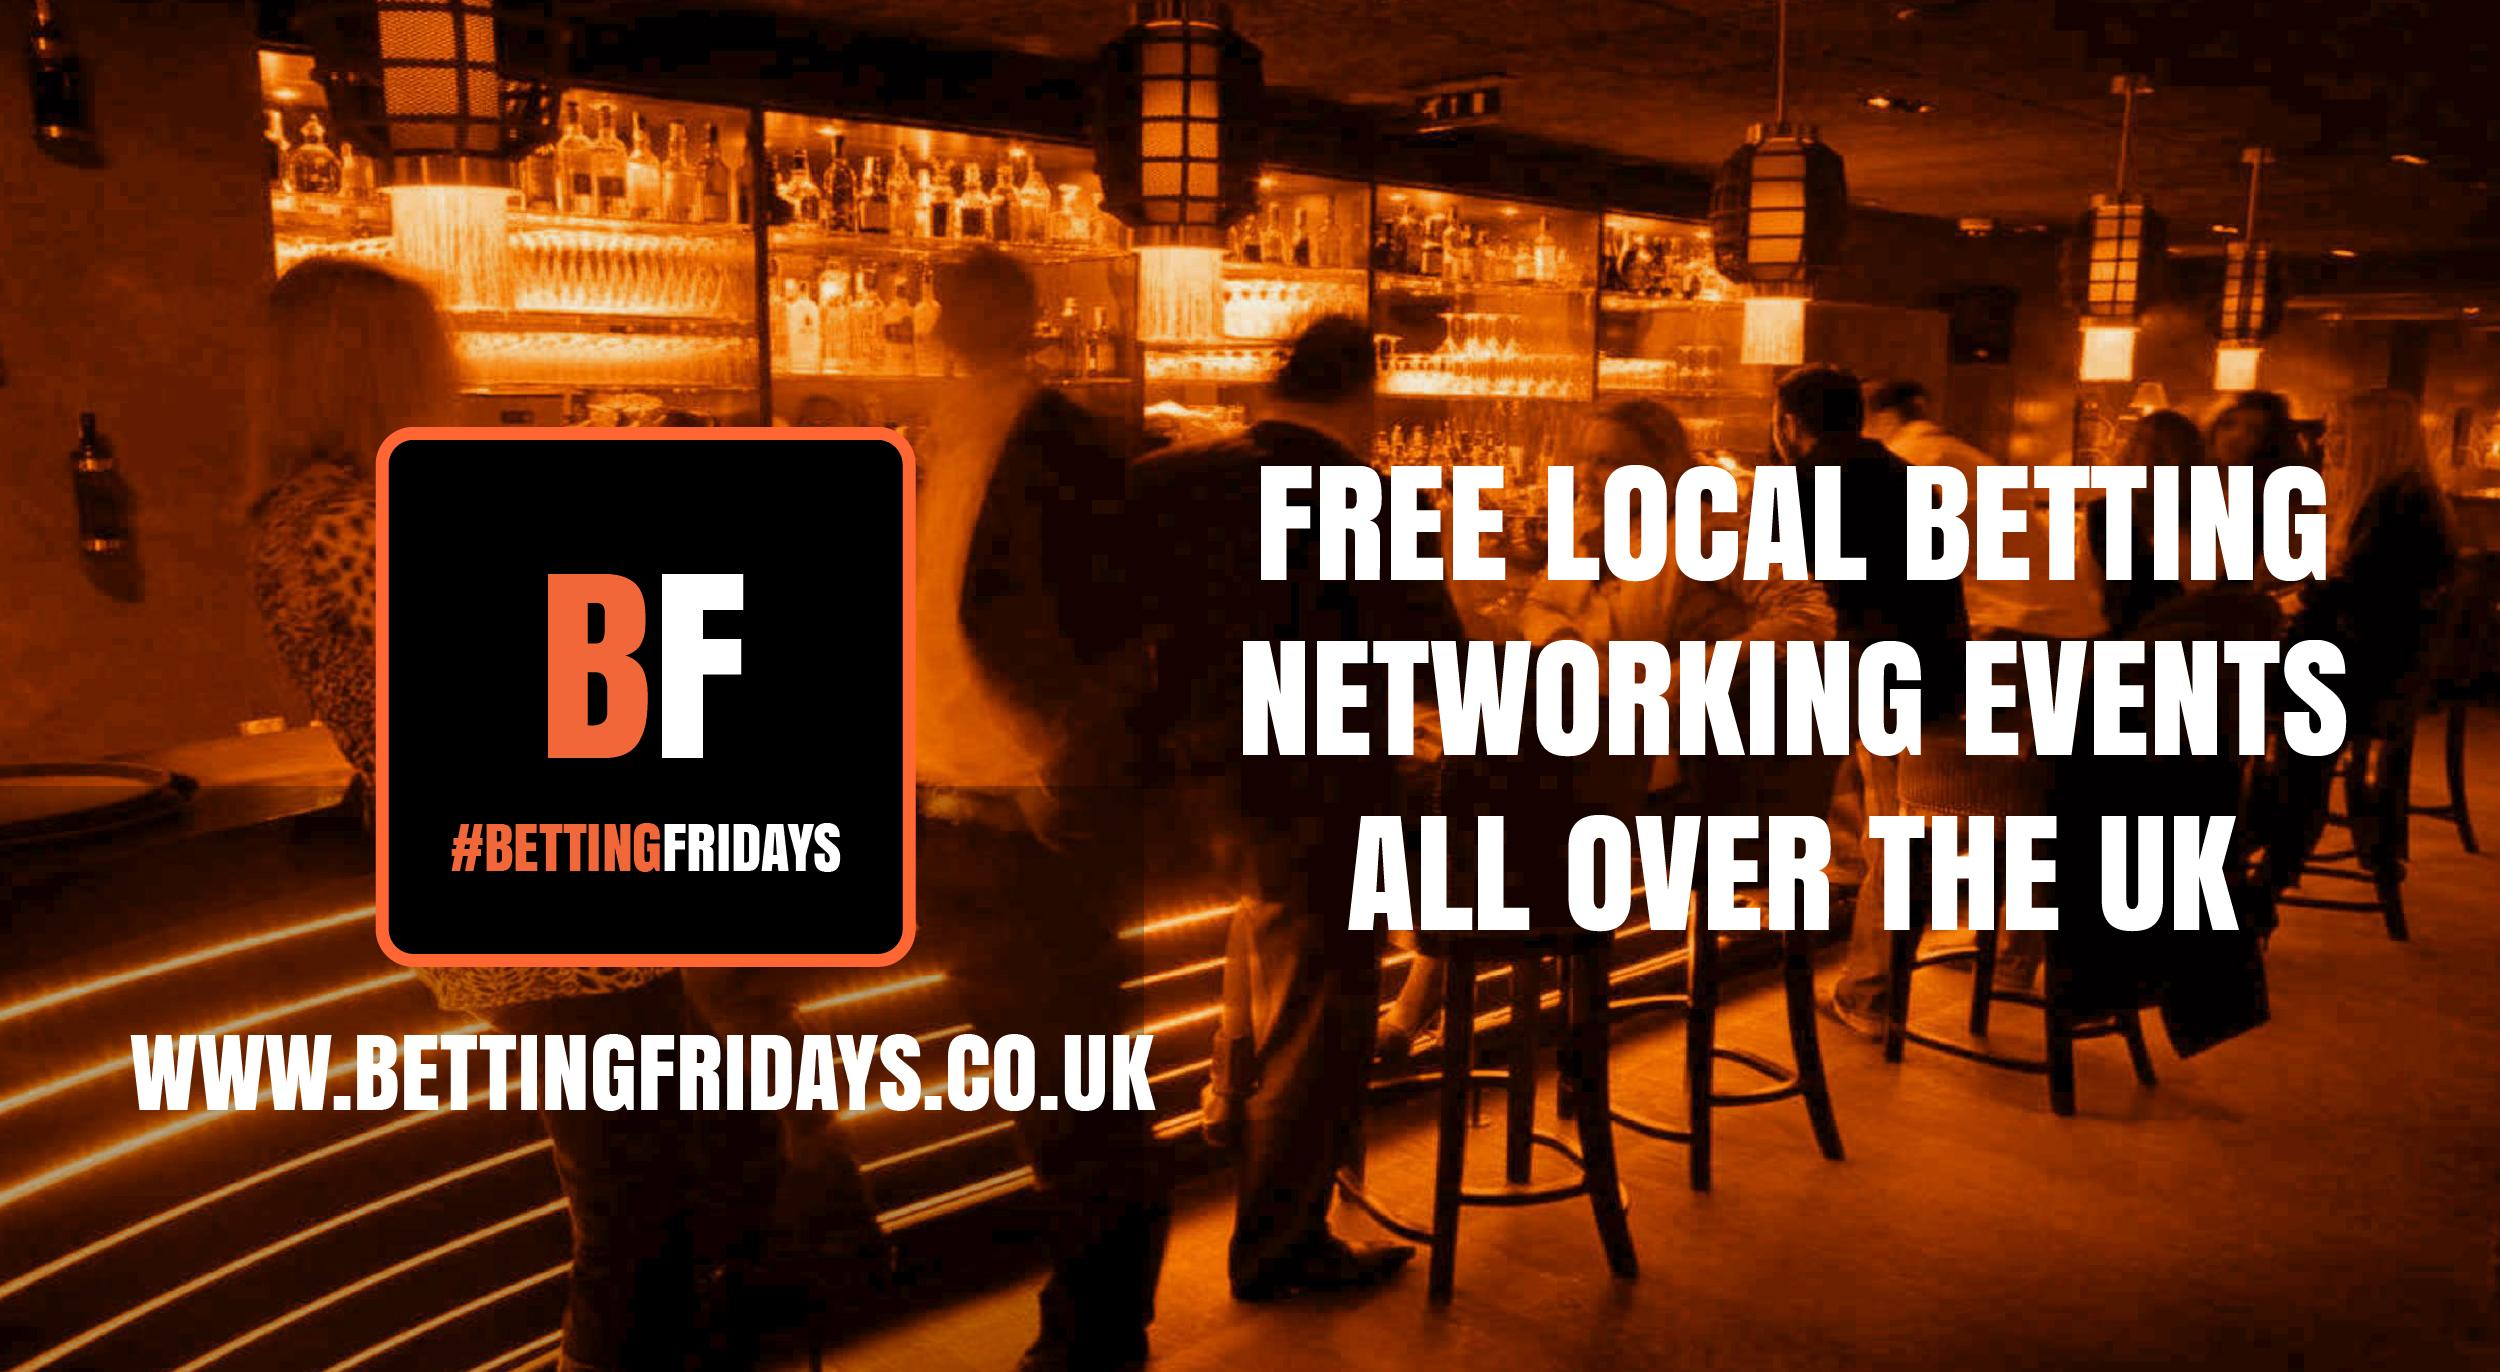 Betting Fridays! Free betting networking event in Ormskirk